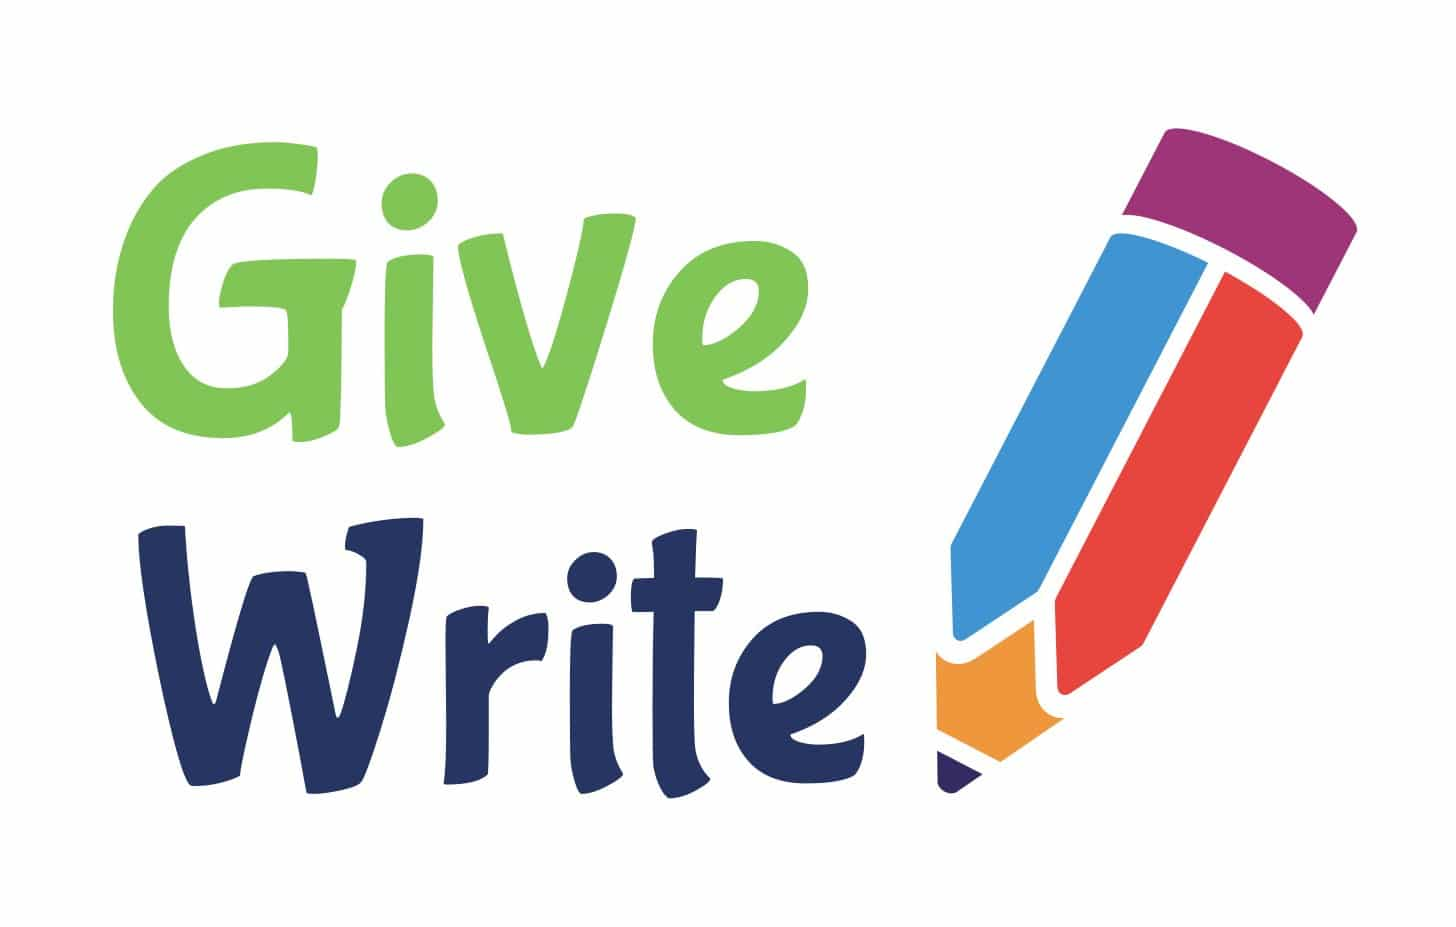 Give Write